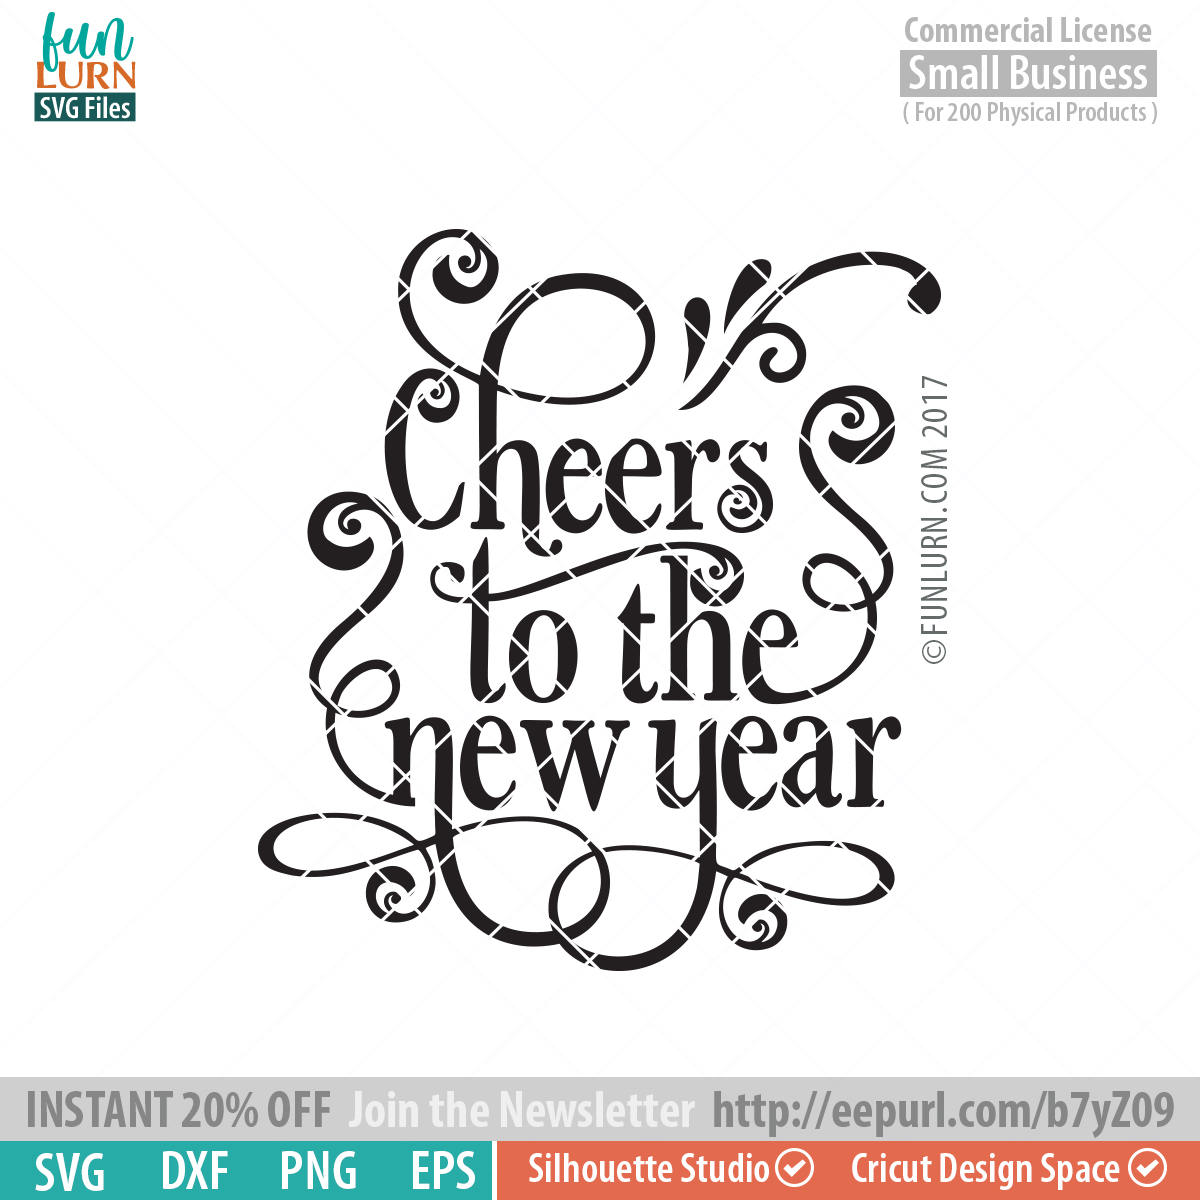 Cheers to the new year SVG - FunLurn SVG